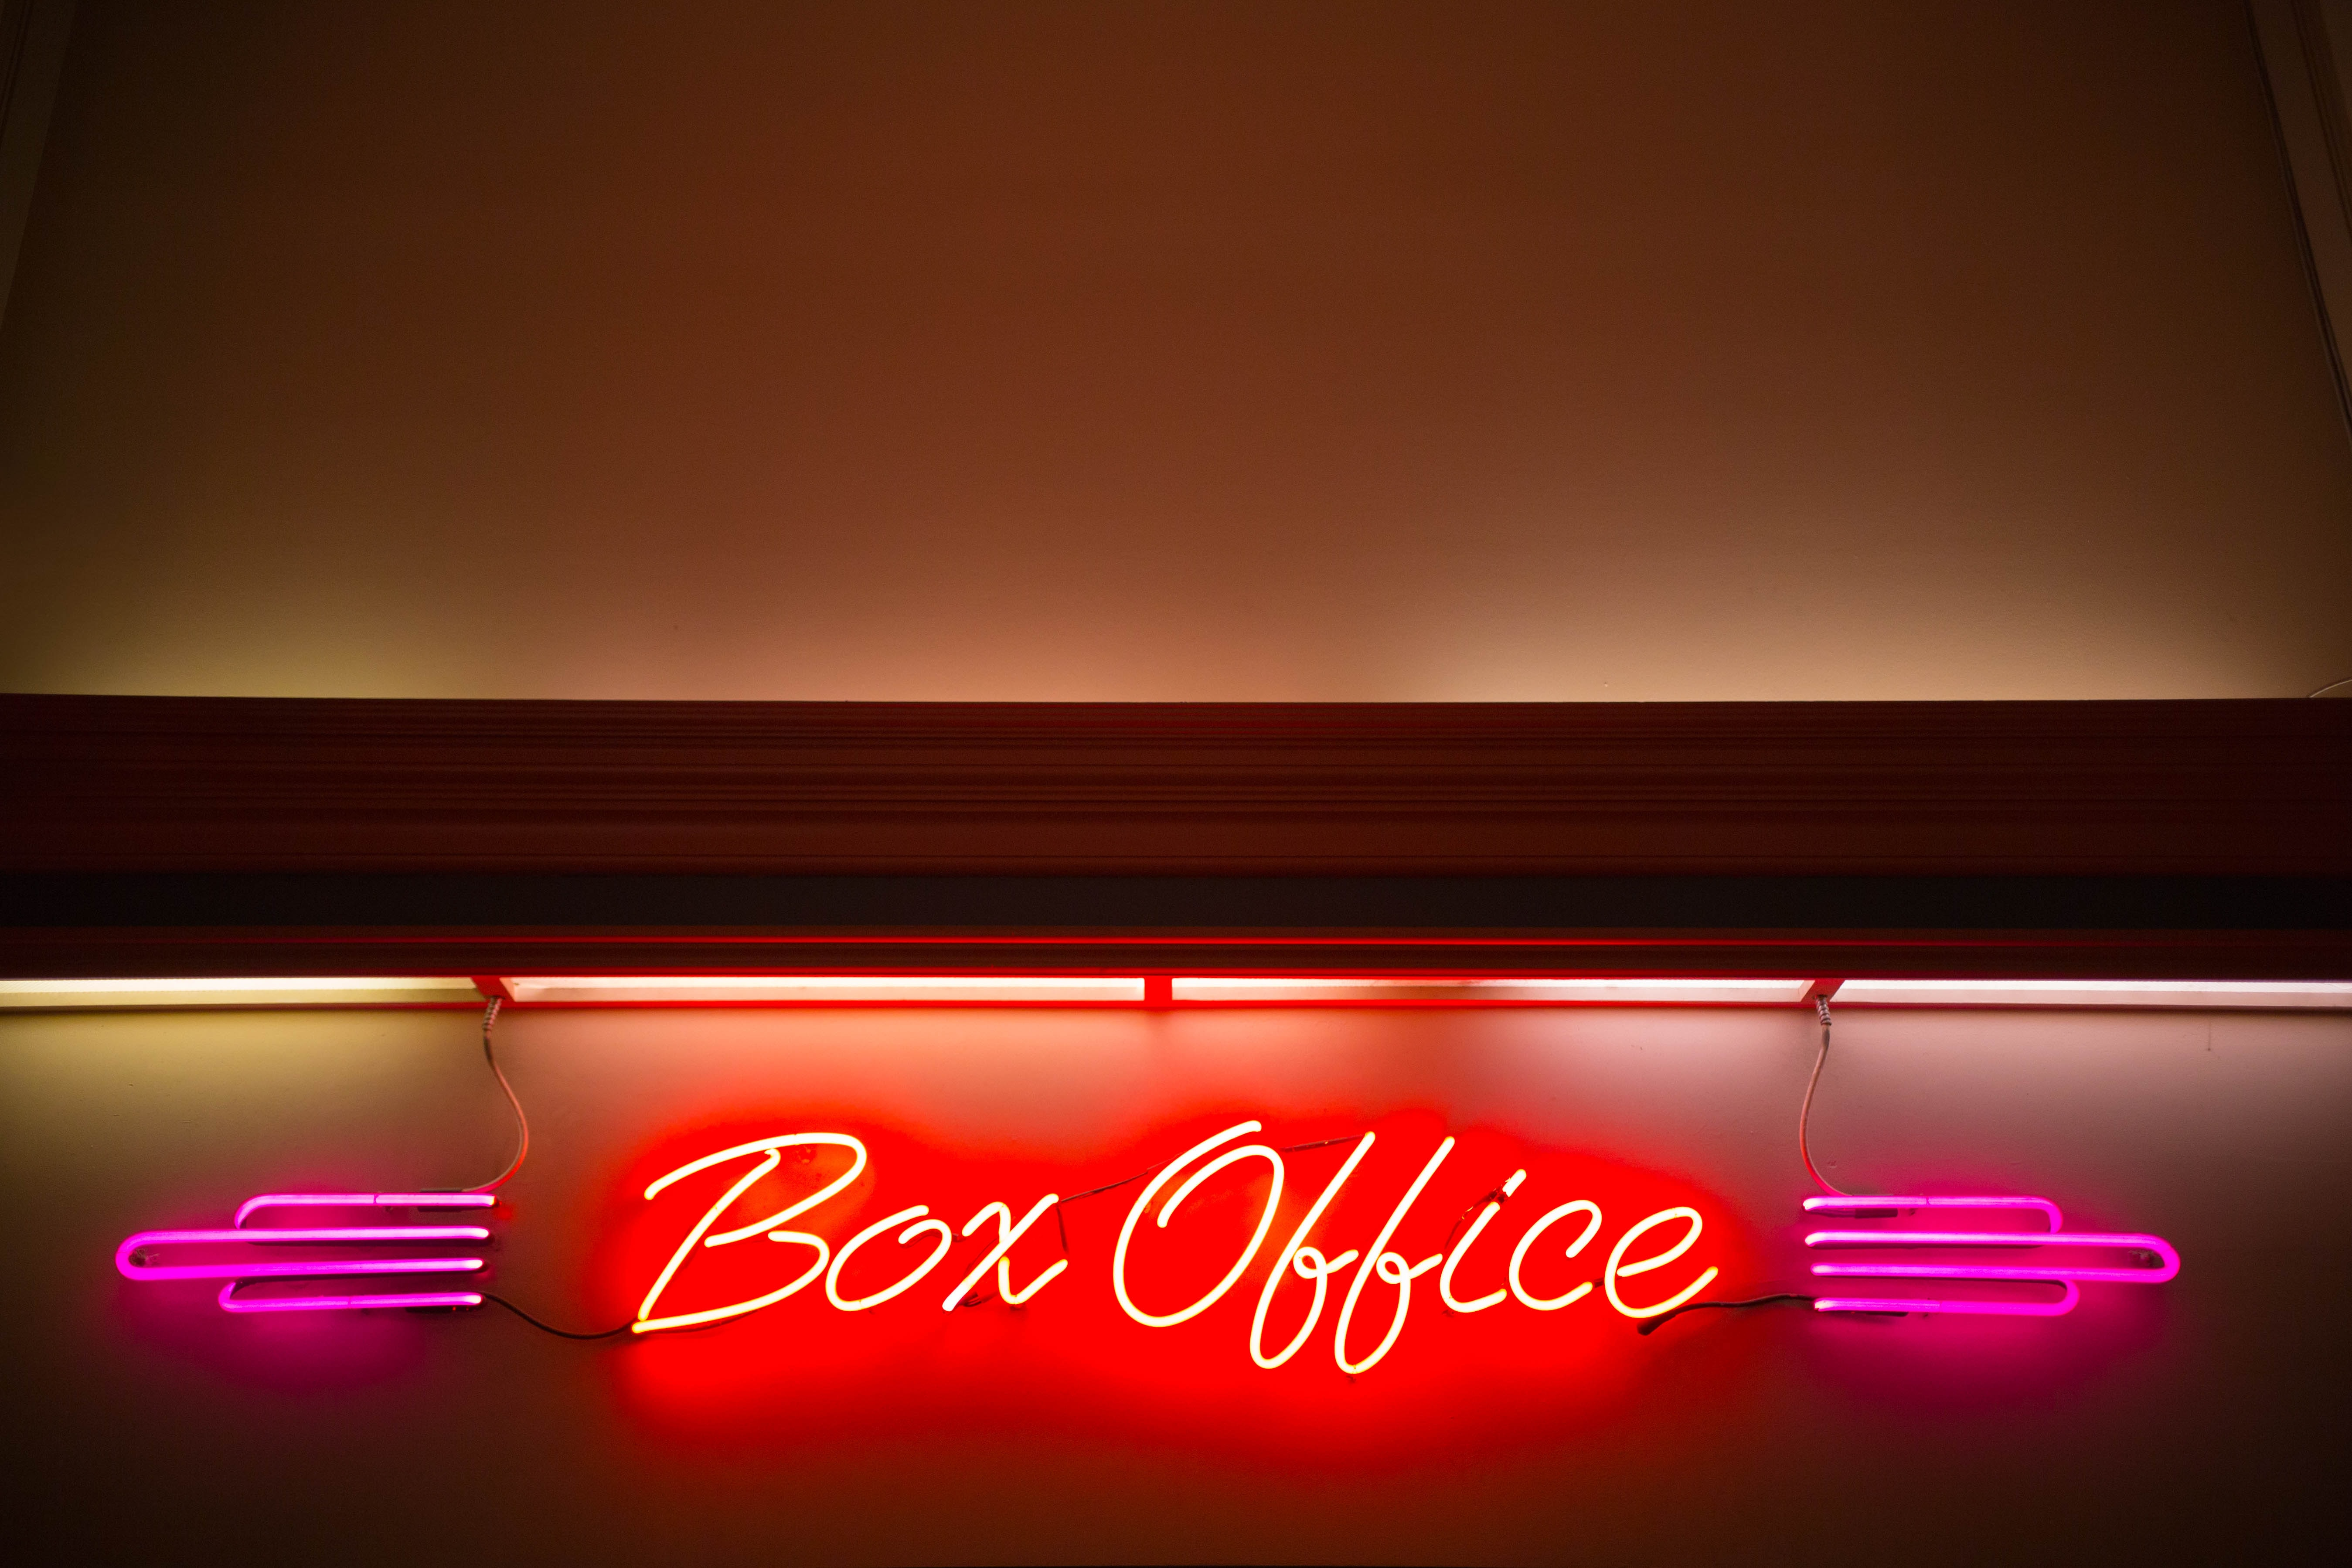 wall mounted red box office neon light signage